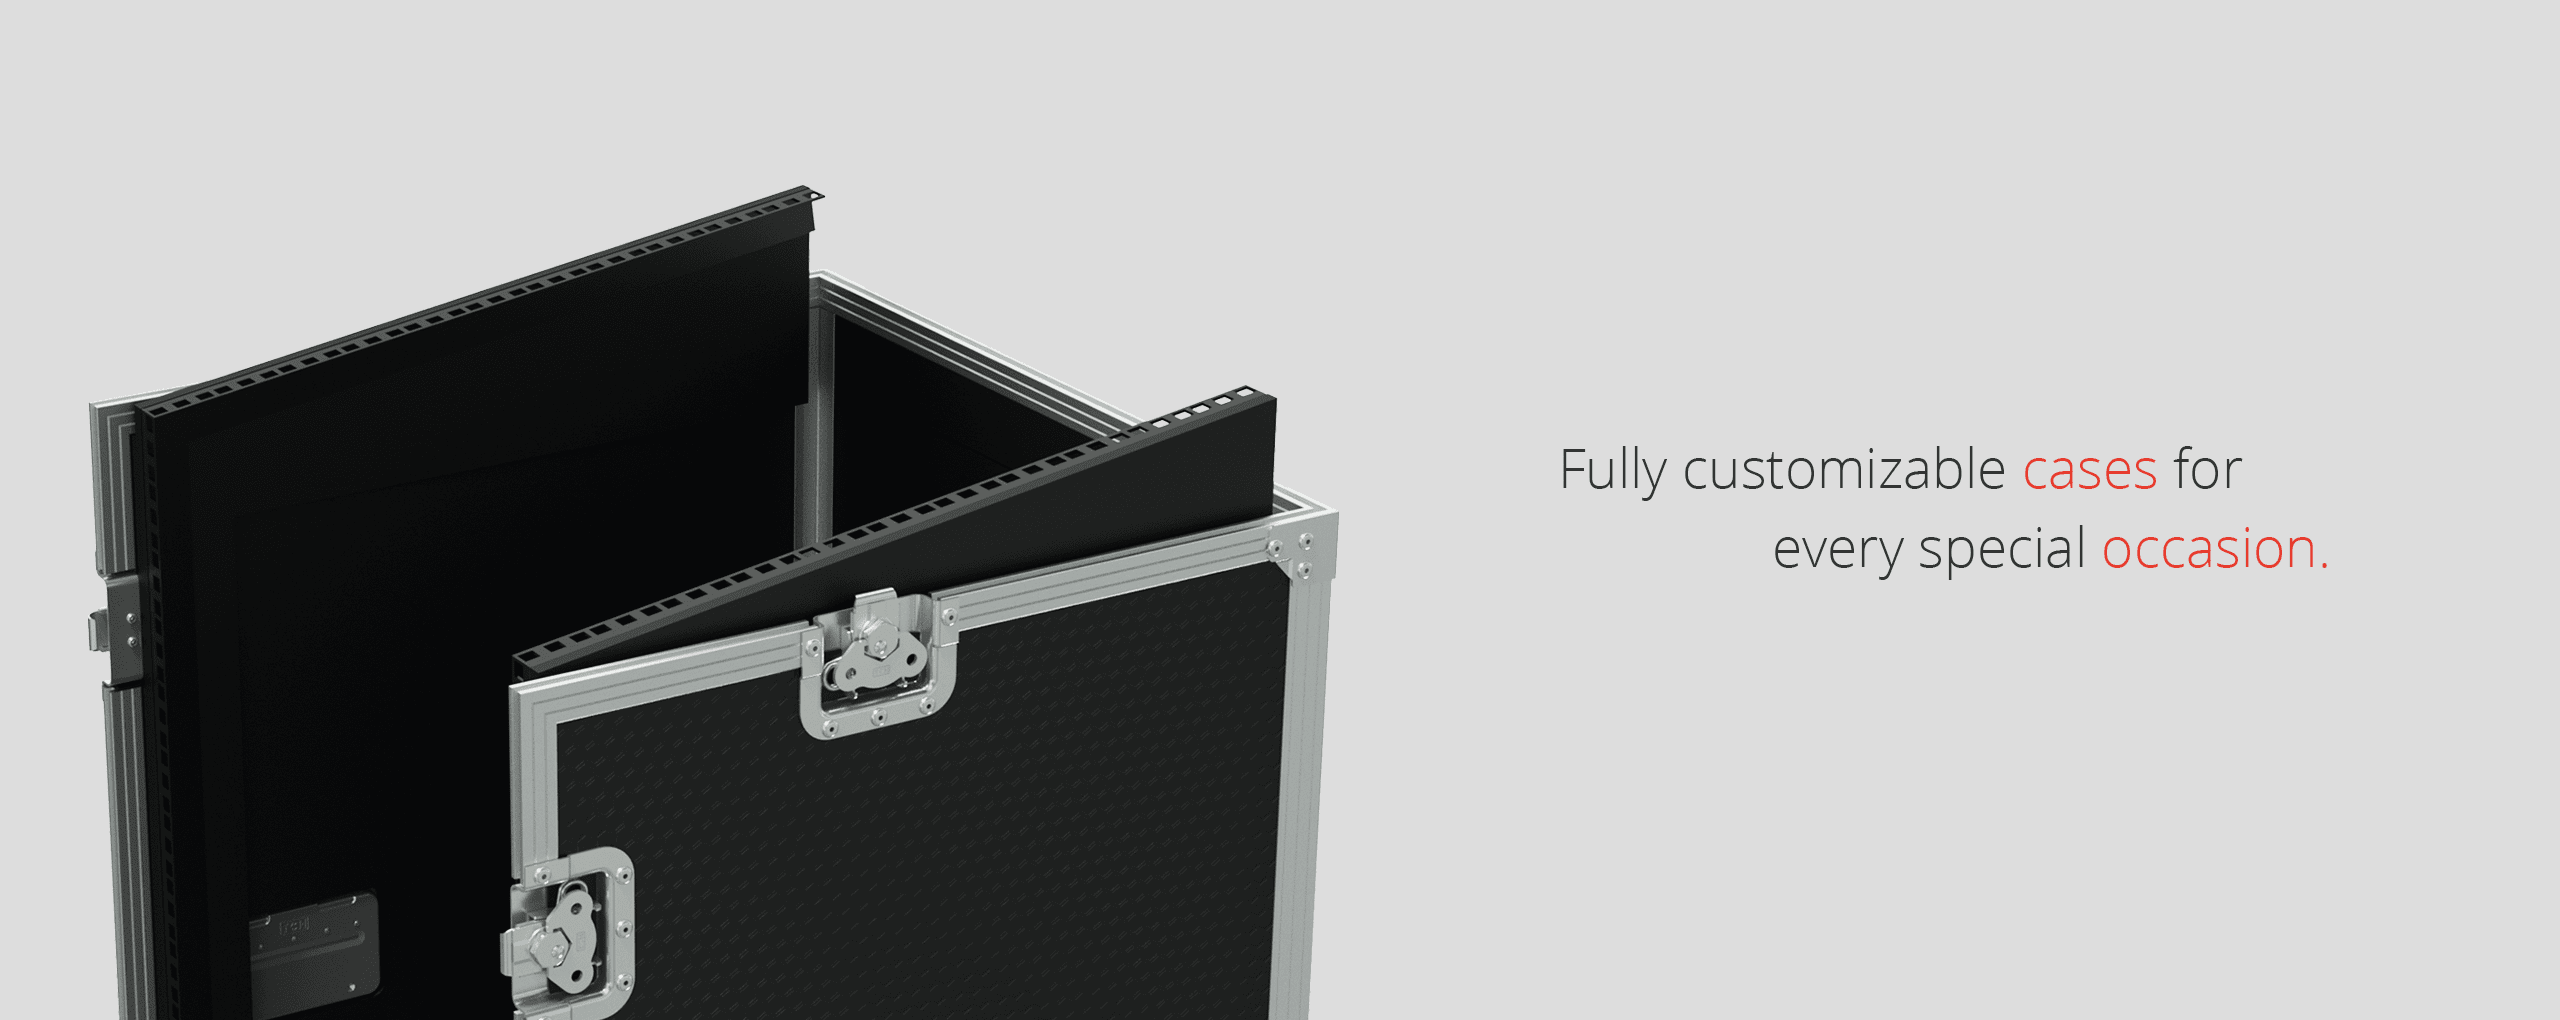 Fully customizable cases.